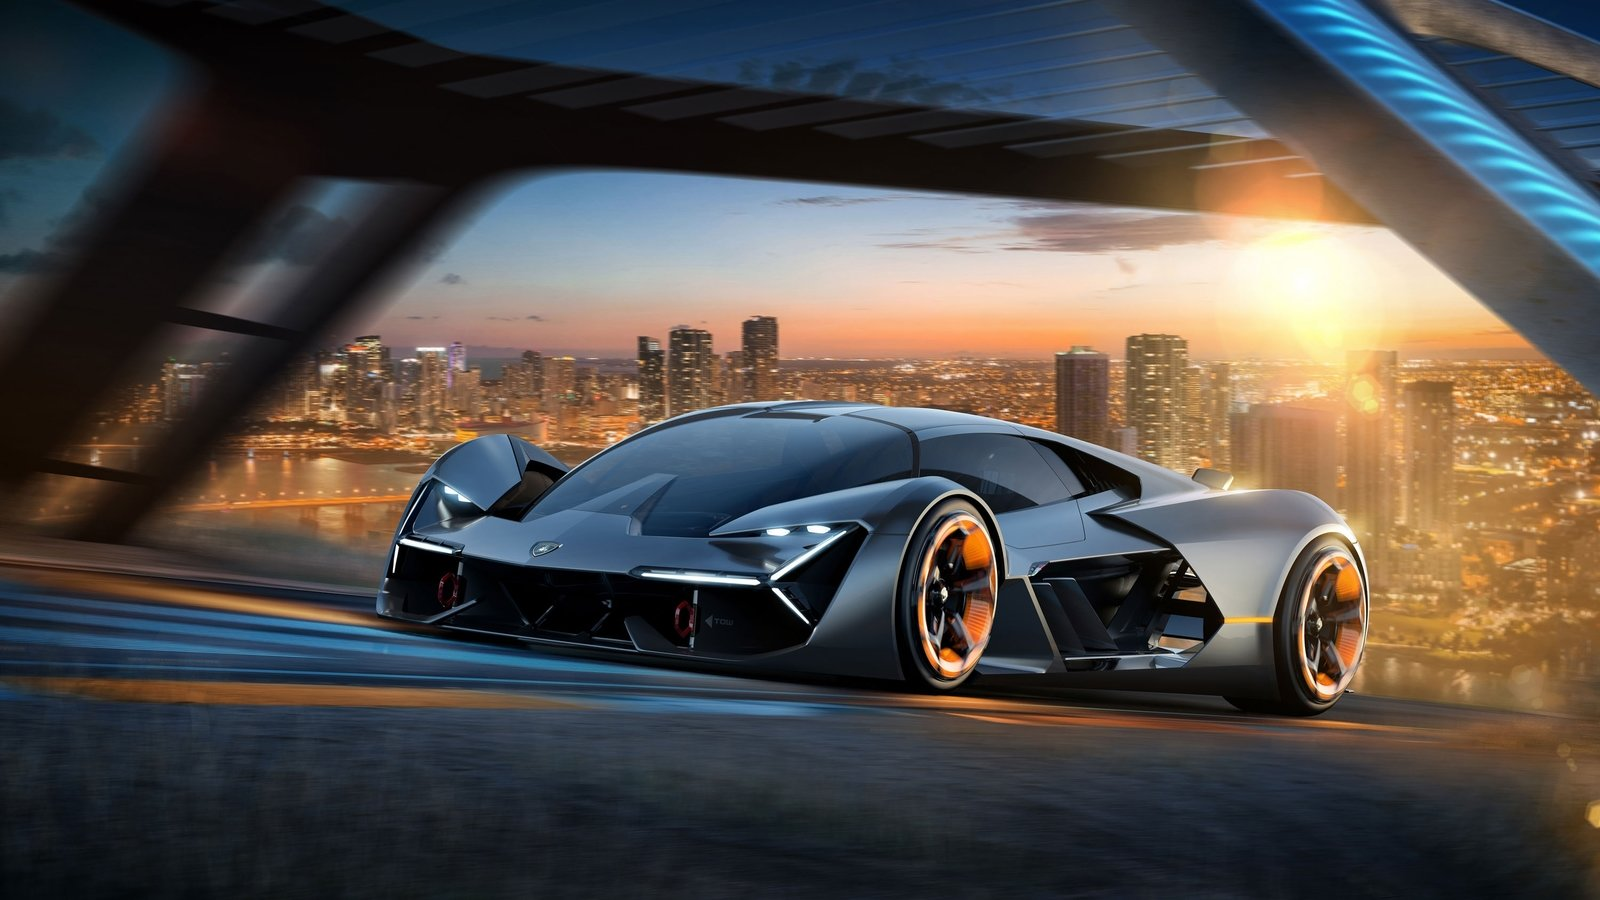 Lamborghini S First Ever Hybrid Hypercar Could Be An 838 Horsepower